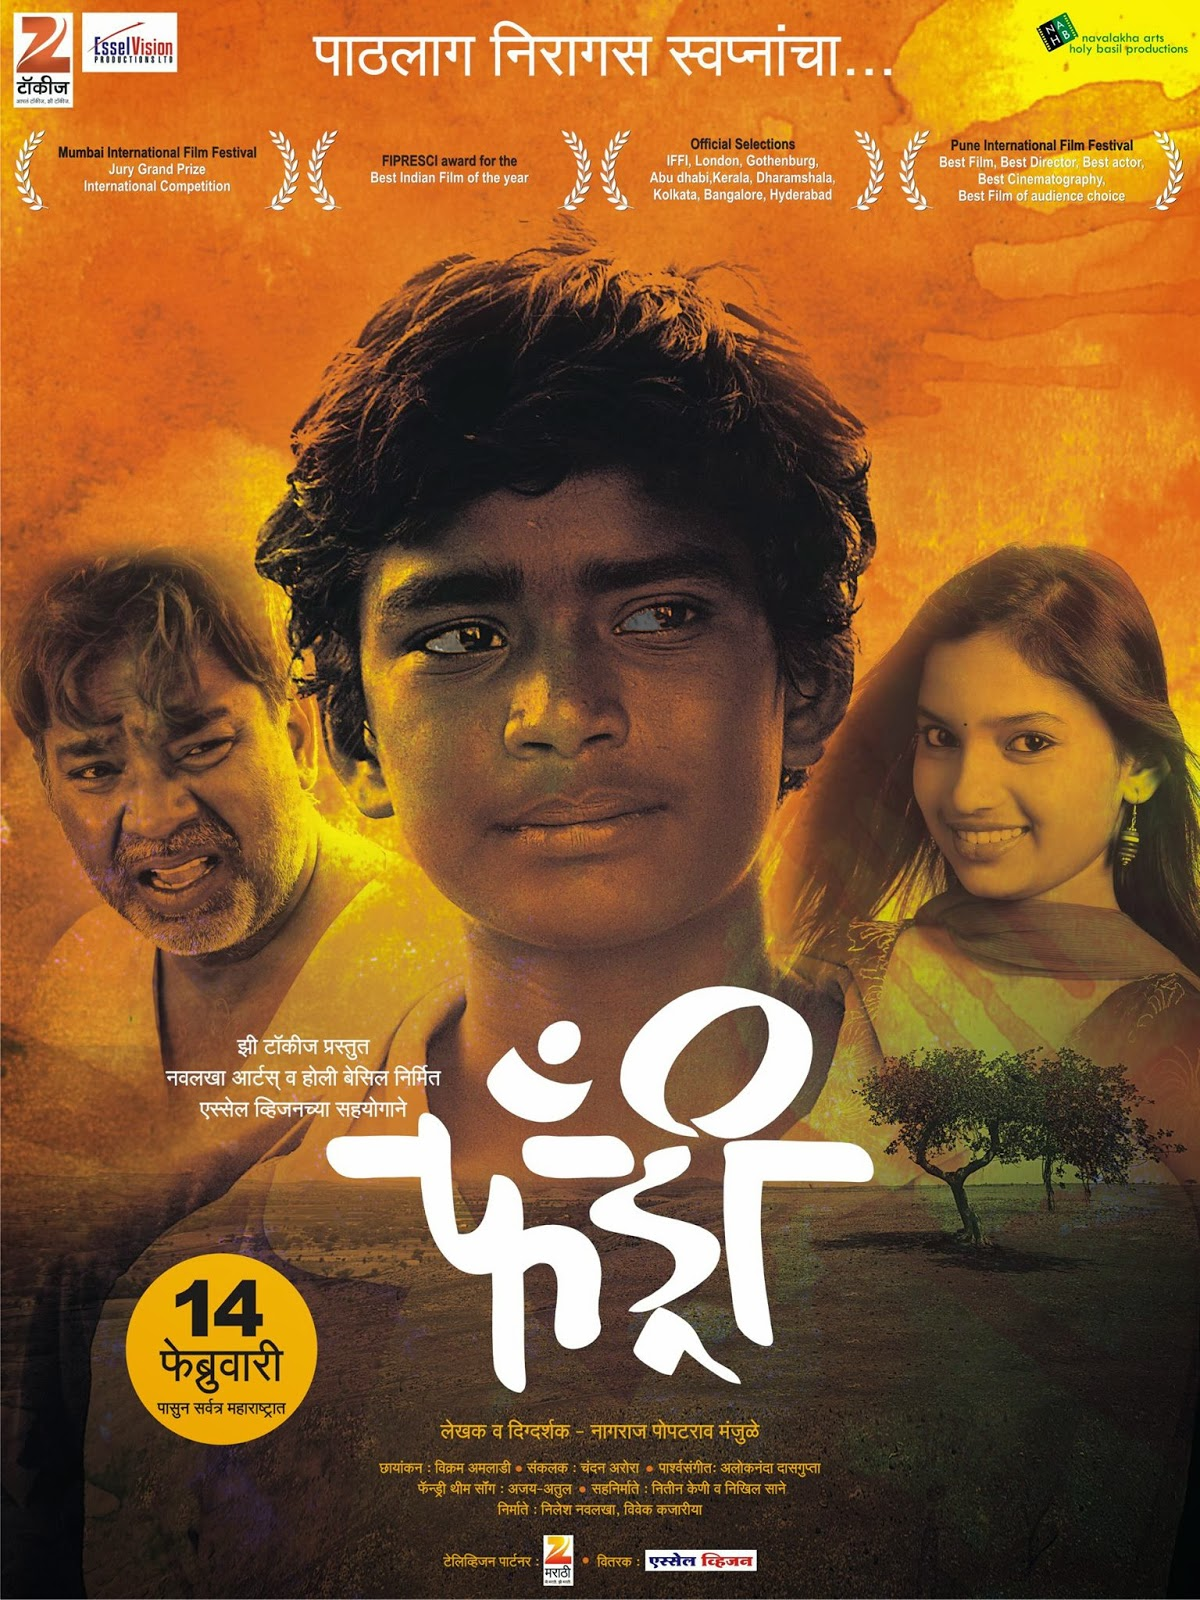 P k songs free download marathi.